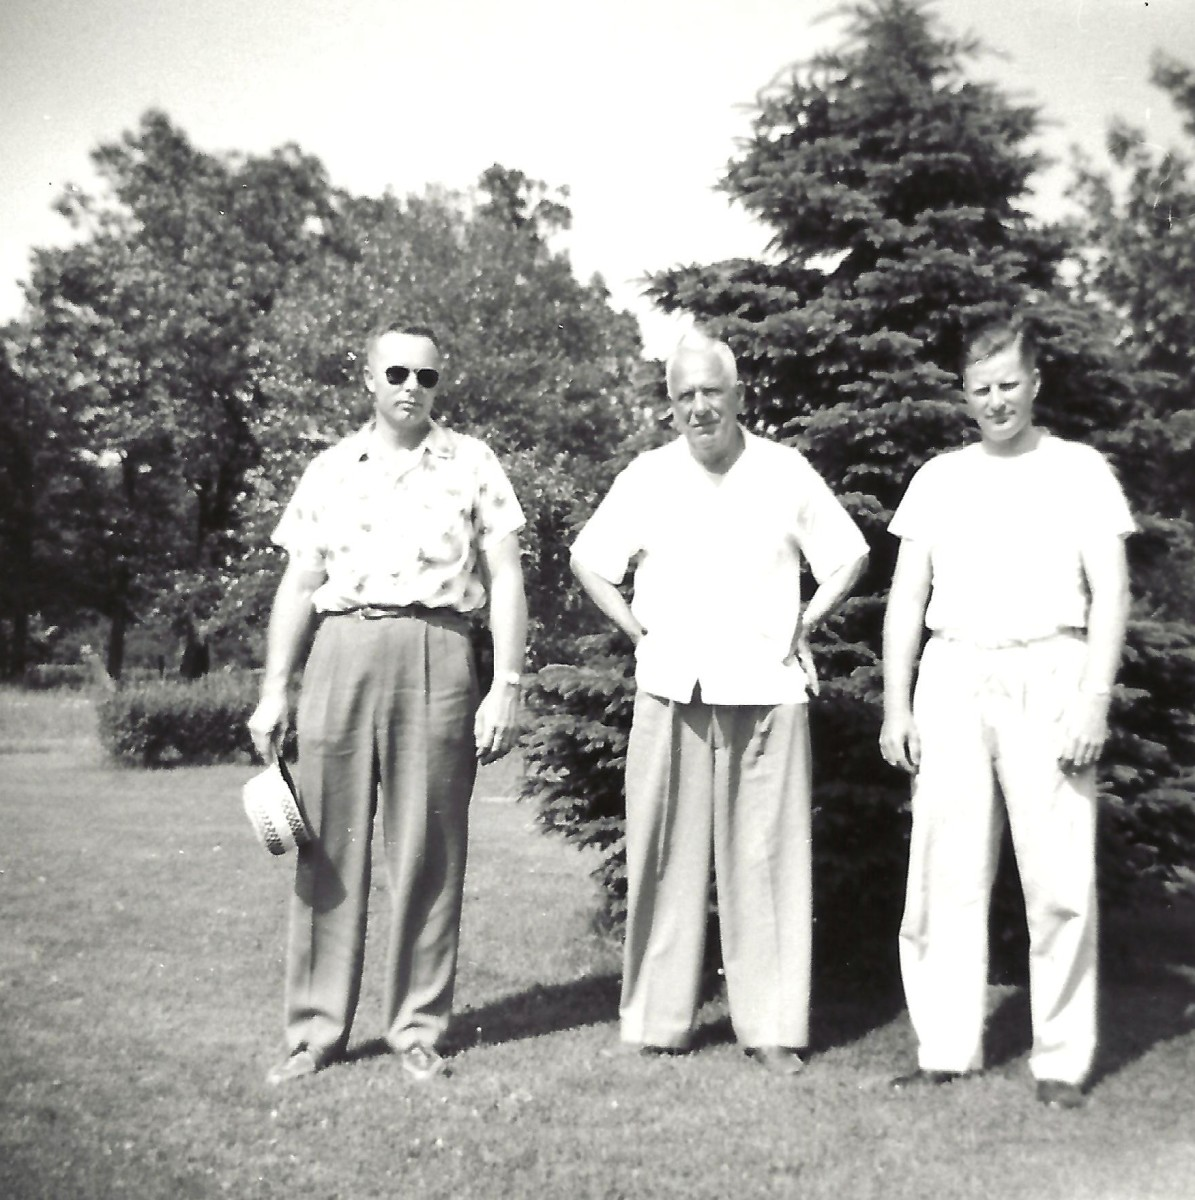 Left to right...my Dad, Grandpa and Uncle Russ in 1957.